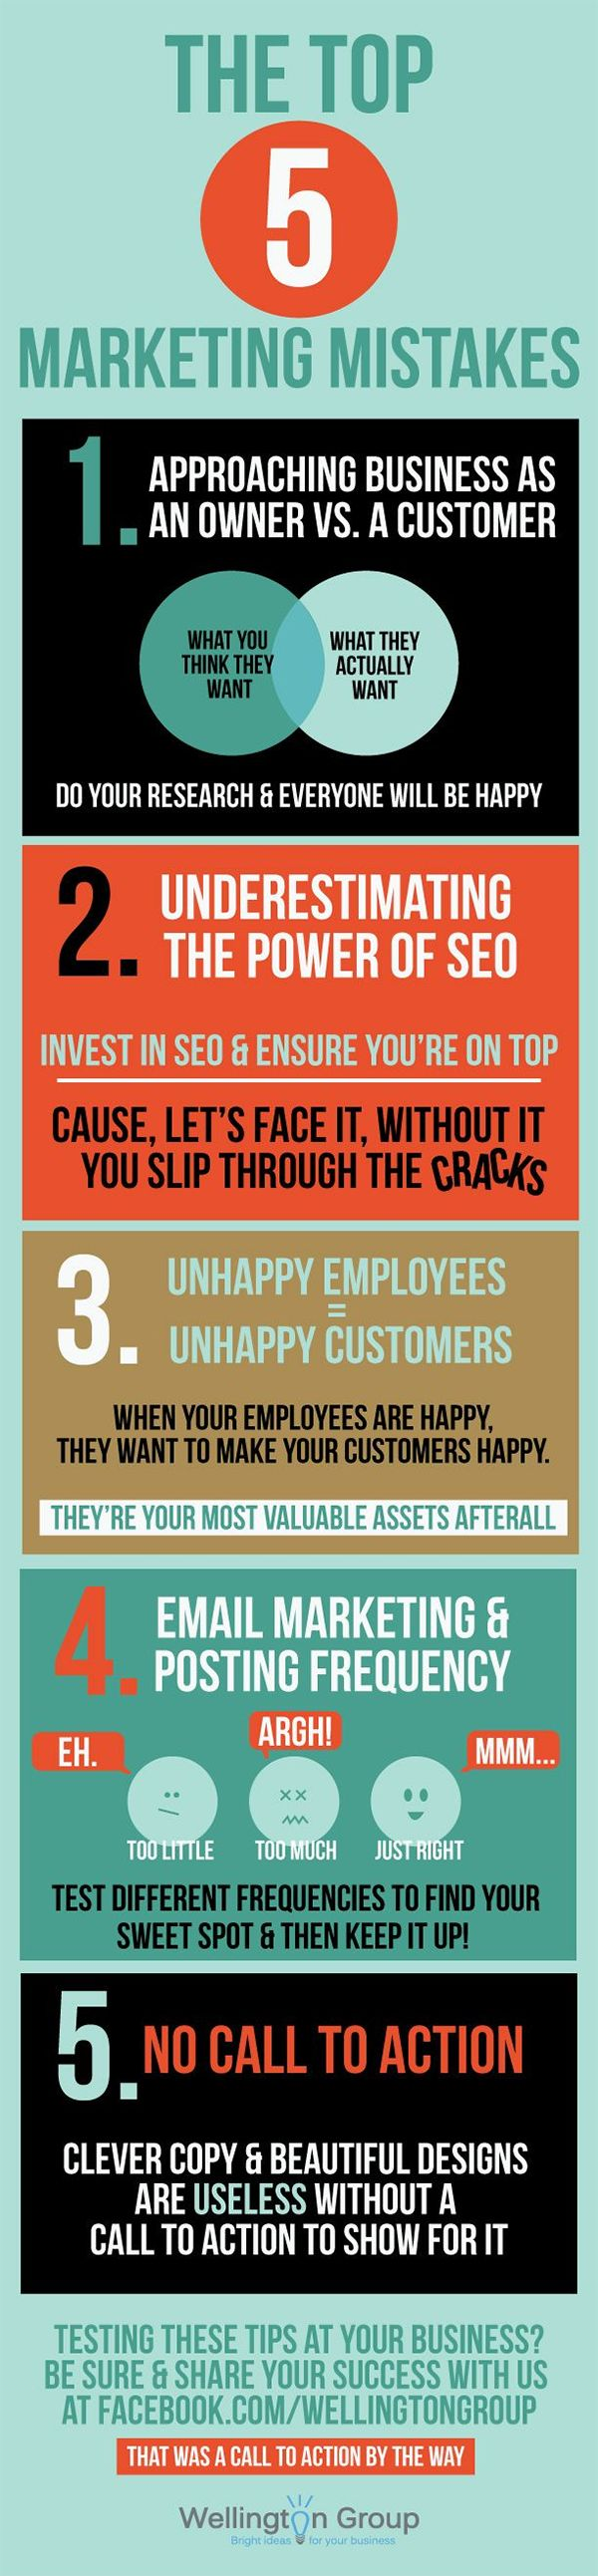 #SMB #Infographic: The Top 5 #Marketing Mistakes Small Business Owners Make